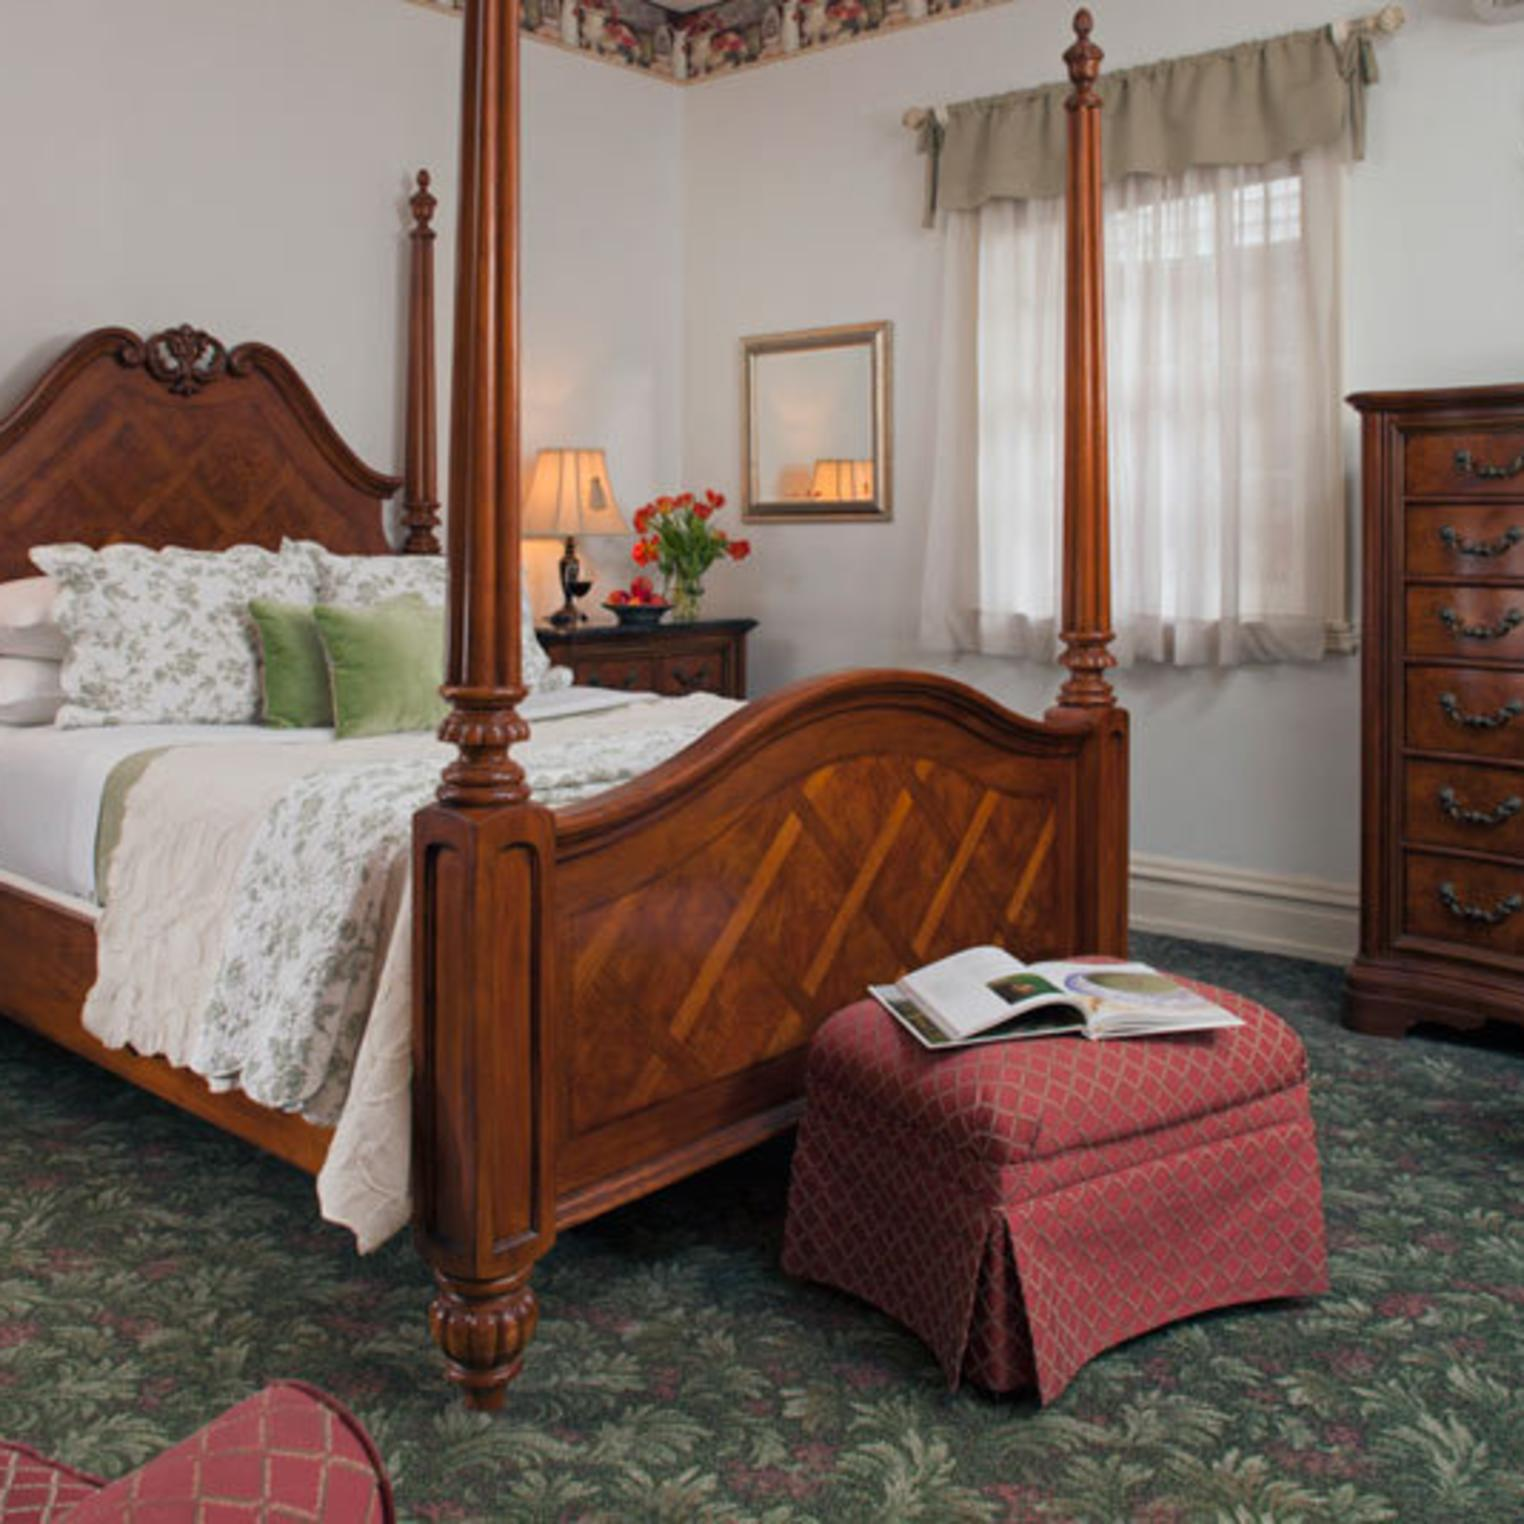 Queen-sized Bed in the Anna Woods Room